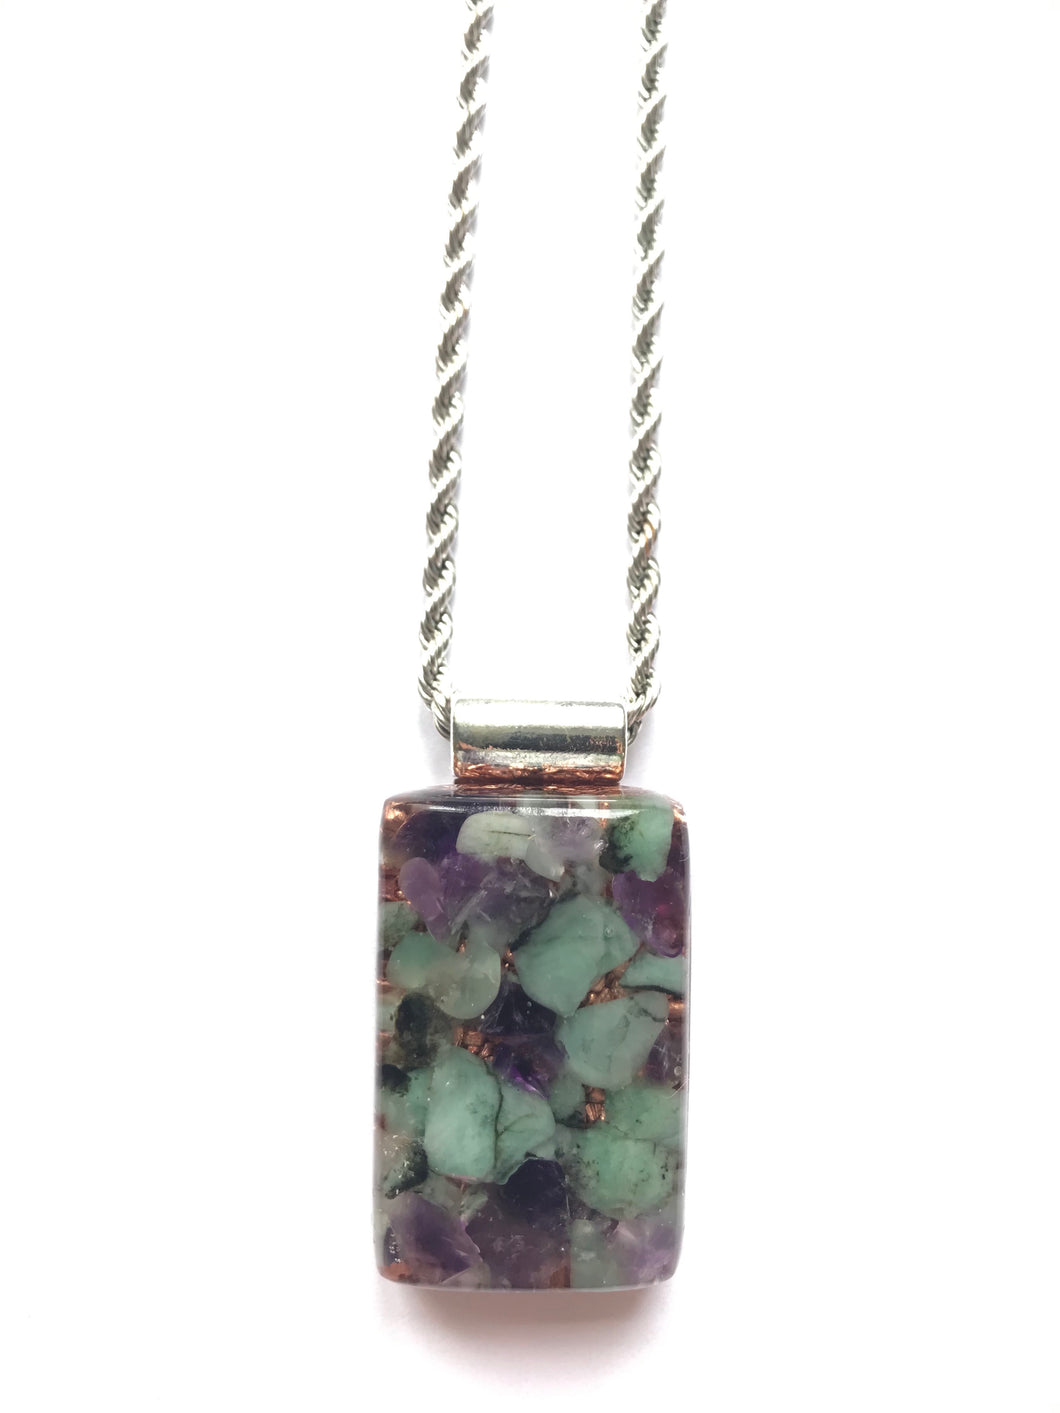 Orgonite Pendant with Emerald & Amethyst